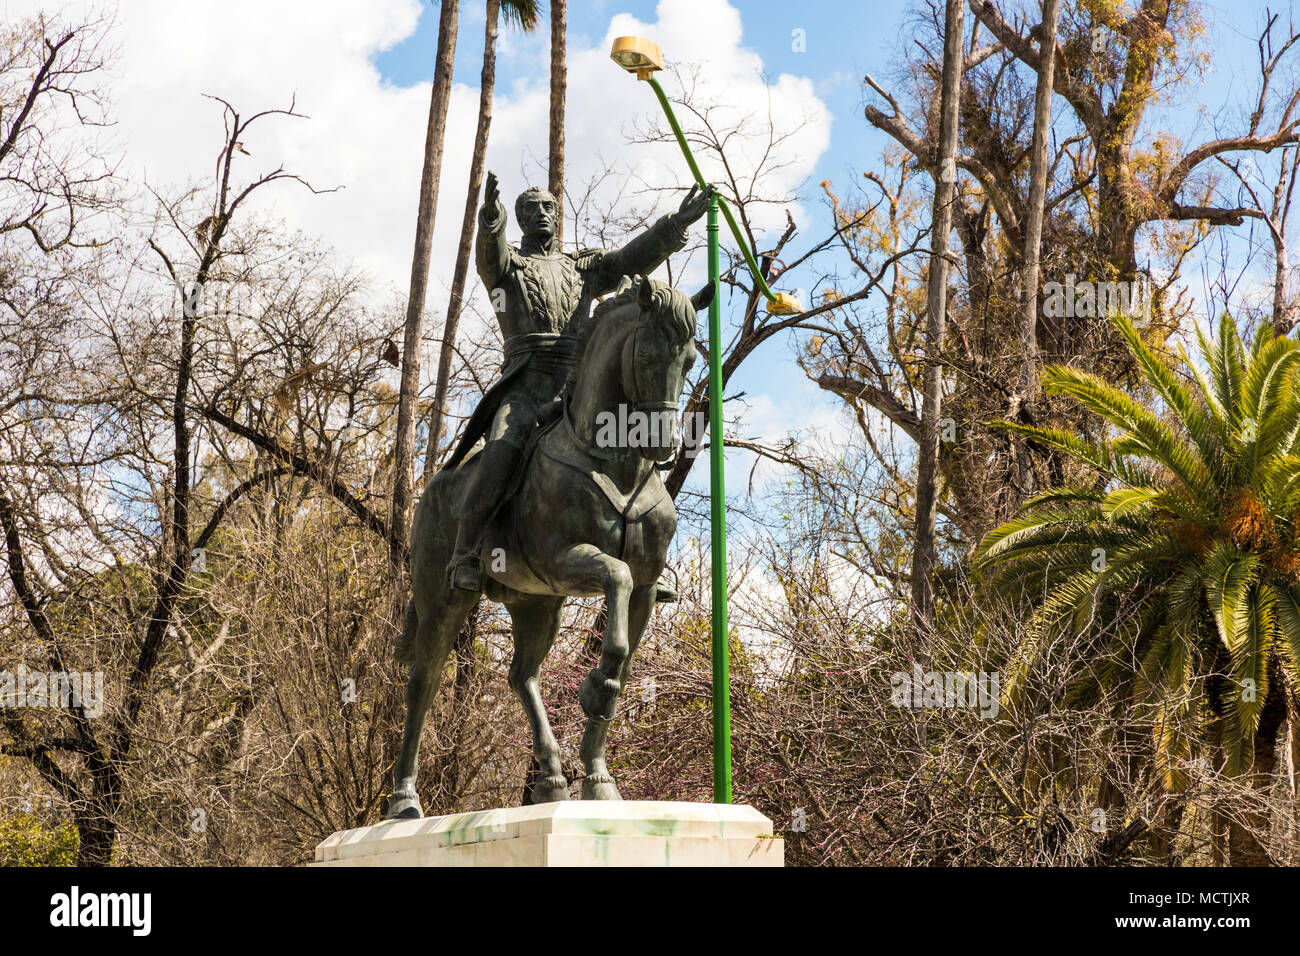 Seville, Spain. Statue of Simon Bolivar, El Libertador, a Venezuelan political leader who lead to the independence of Venezuela, Bolivia, Colombia,etc - Stock Image